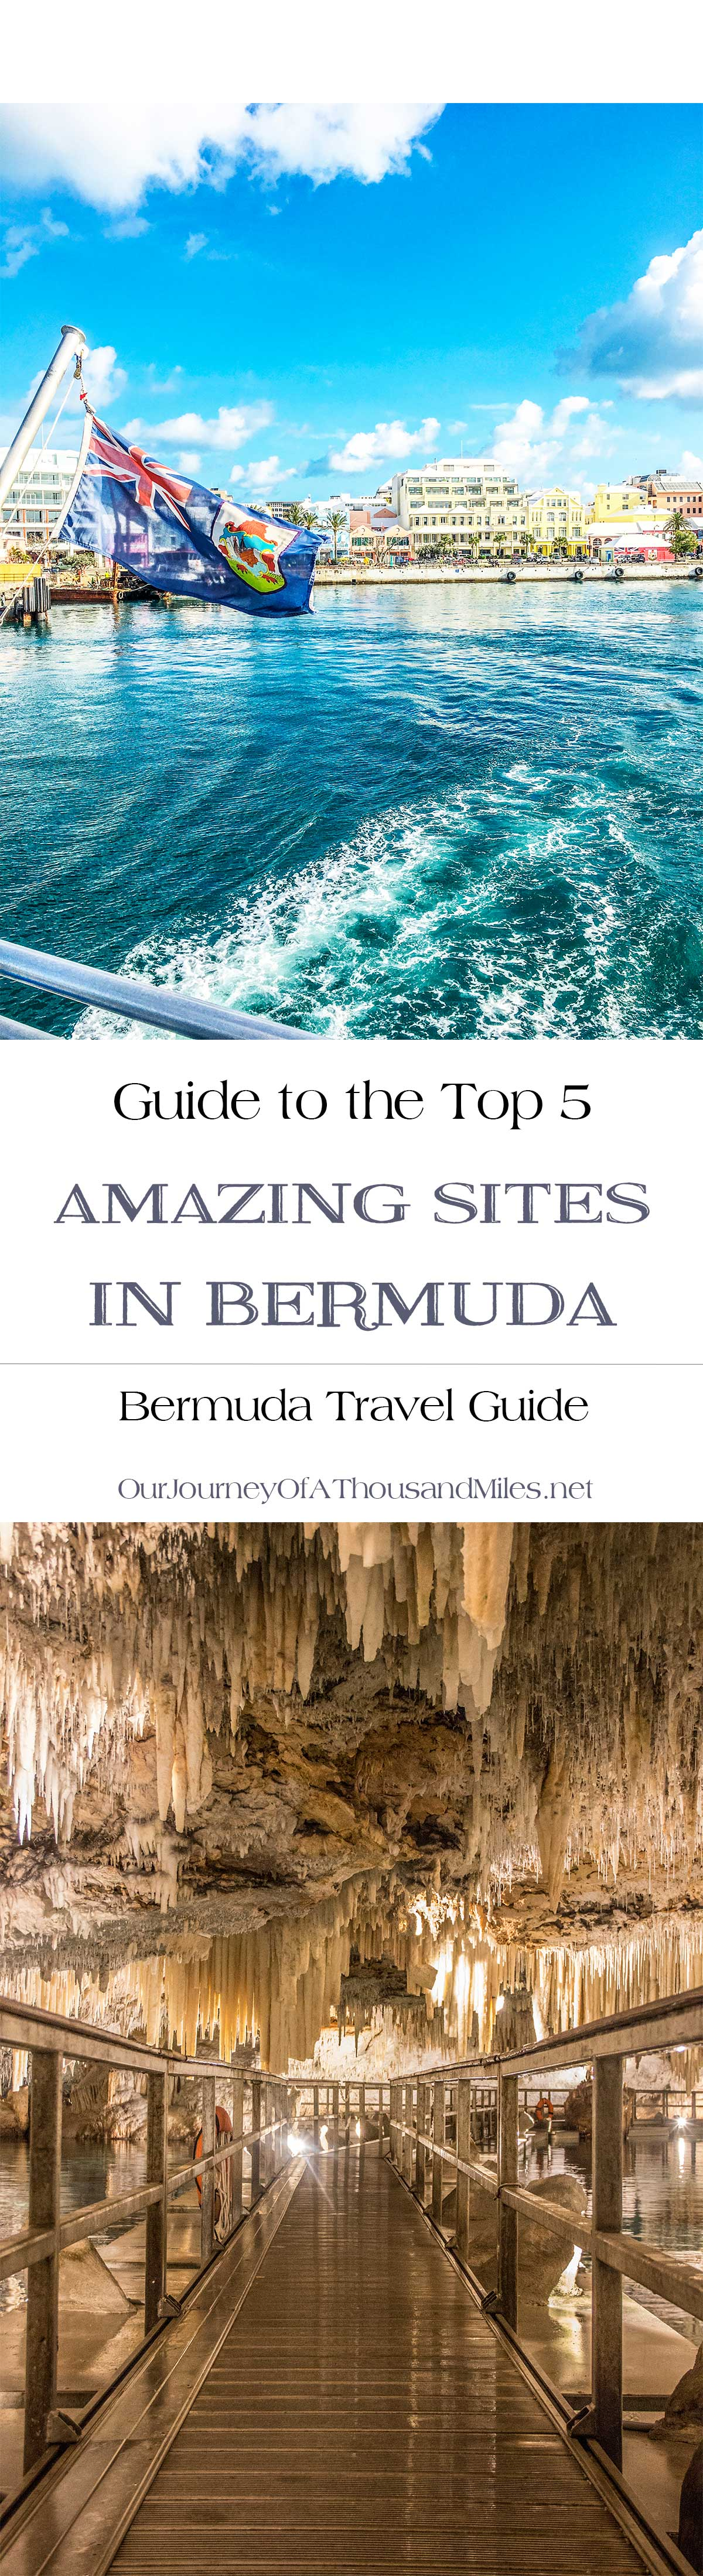 Travel-Guide-to-the-Top-Five-Most-Incredible-Things-About-Bermuda